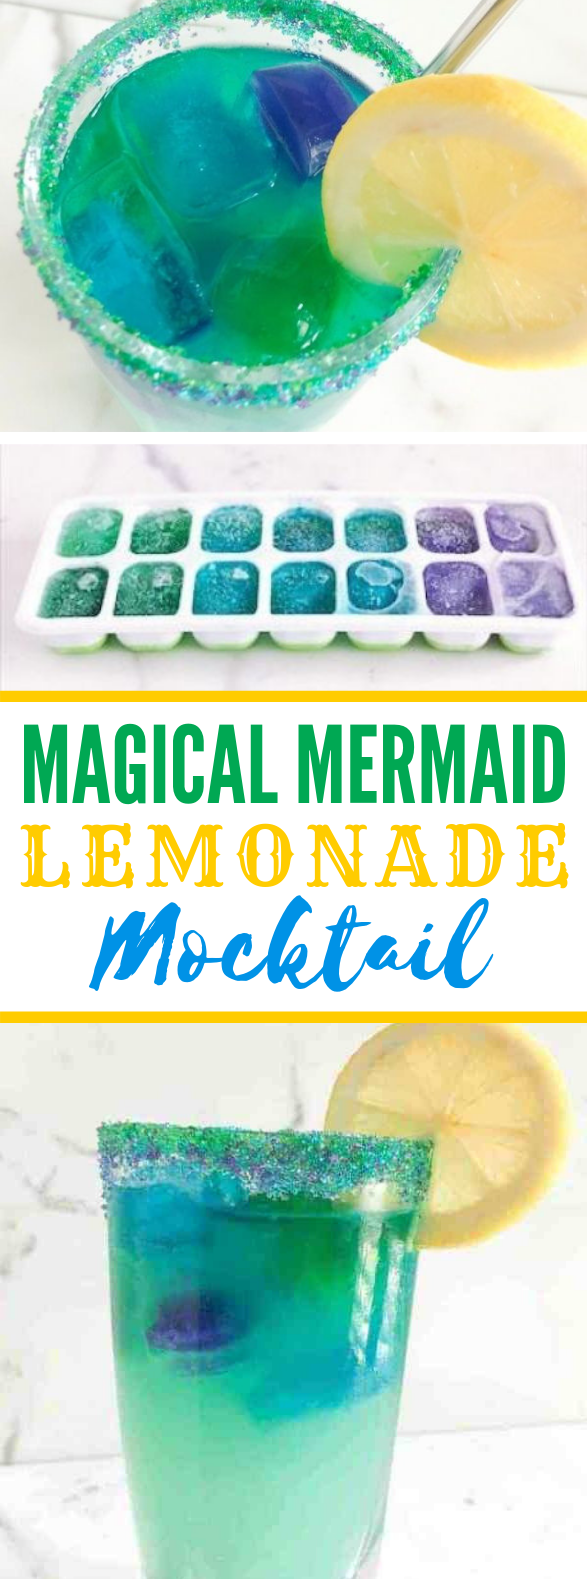 HOW TO MAKE MAGICAL MERMAID LEMONADE – EASY COLORFUL MOCKTAIL #drinks #kiddrinks